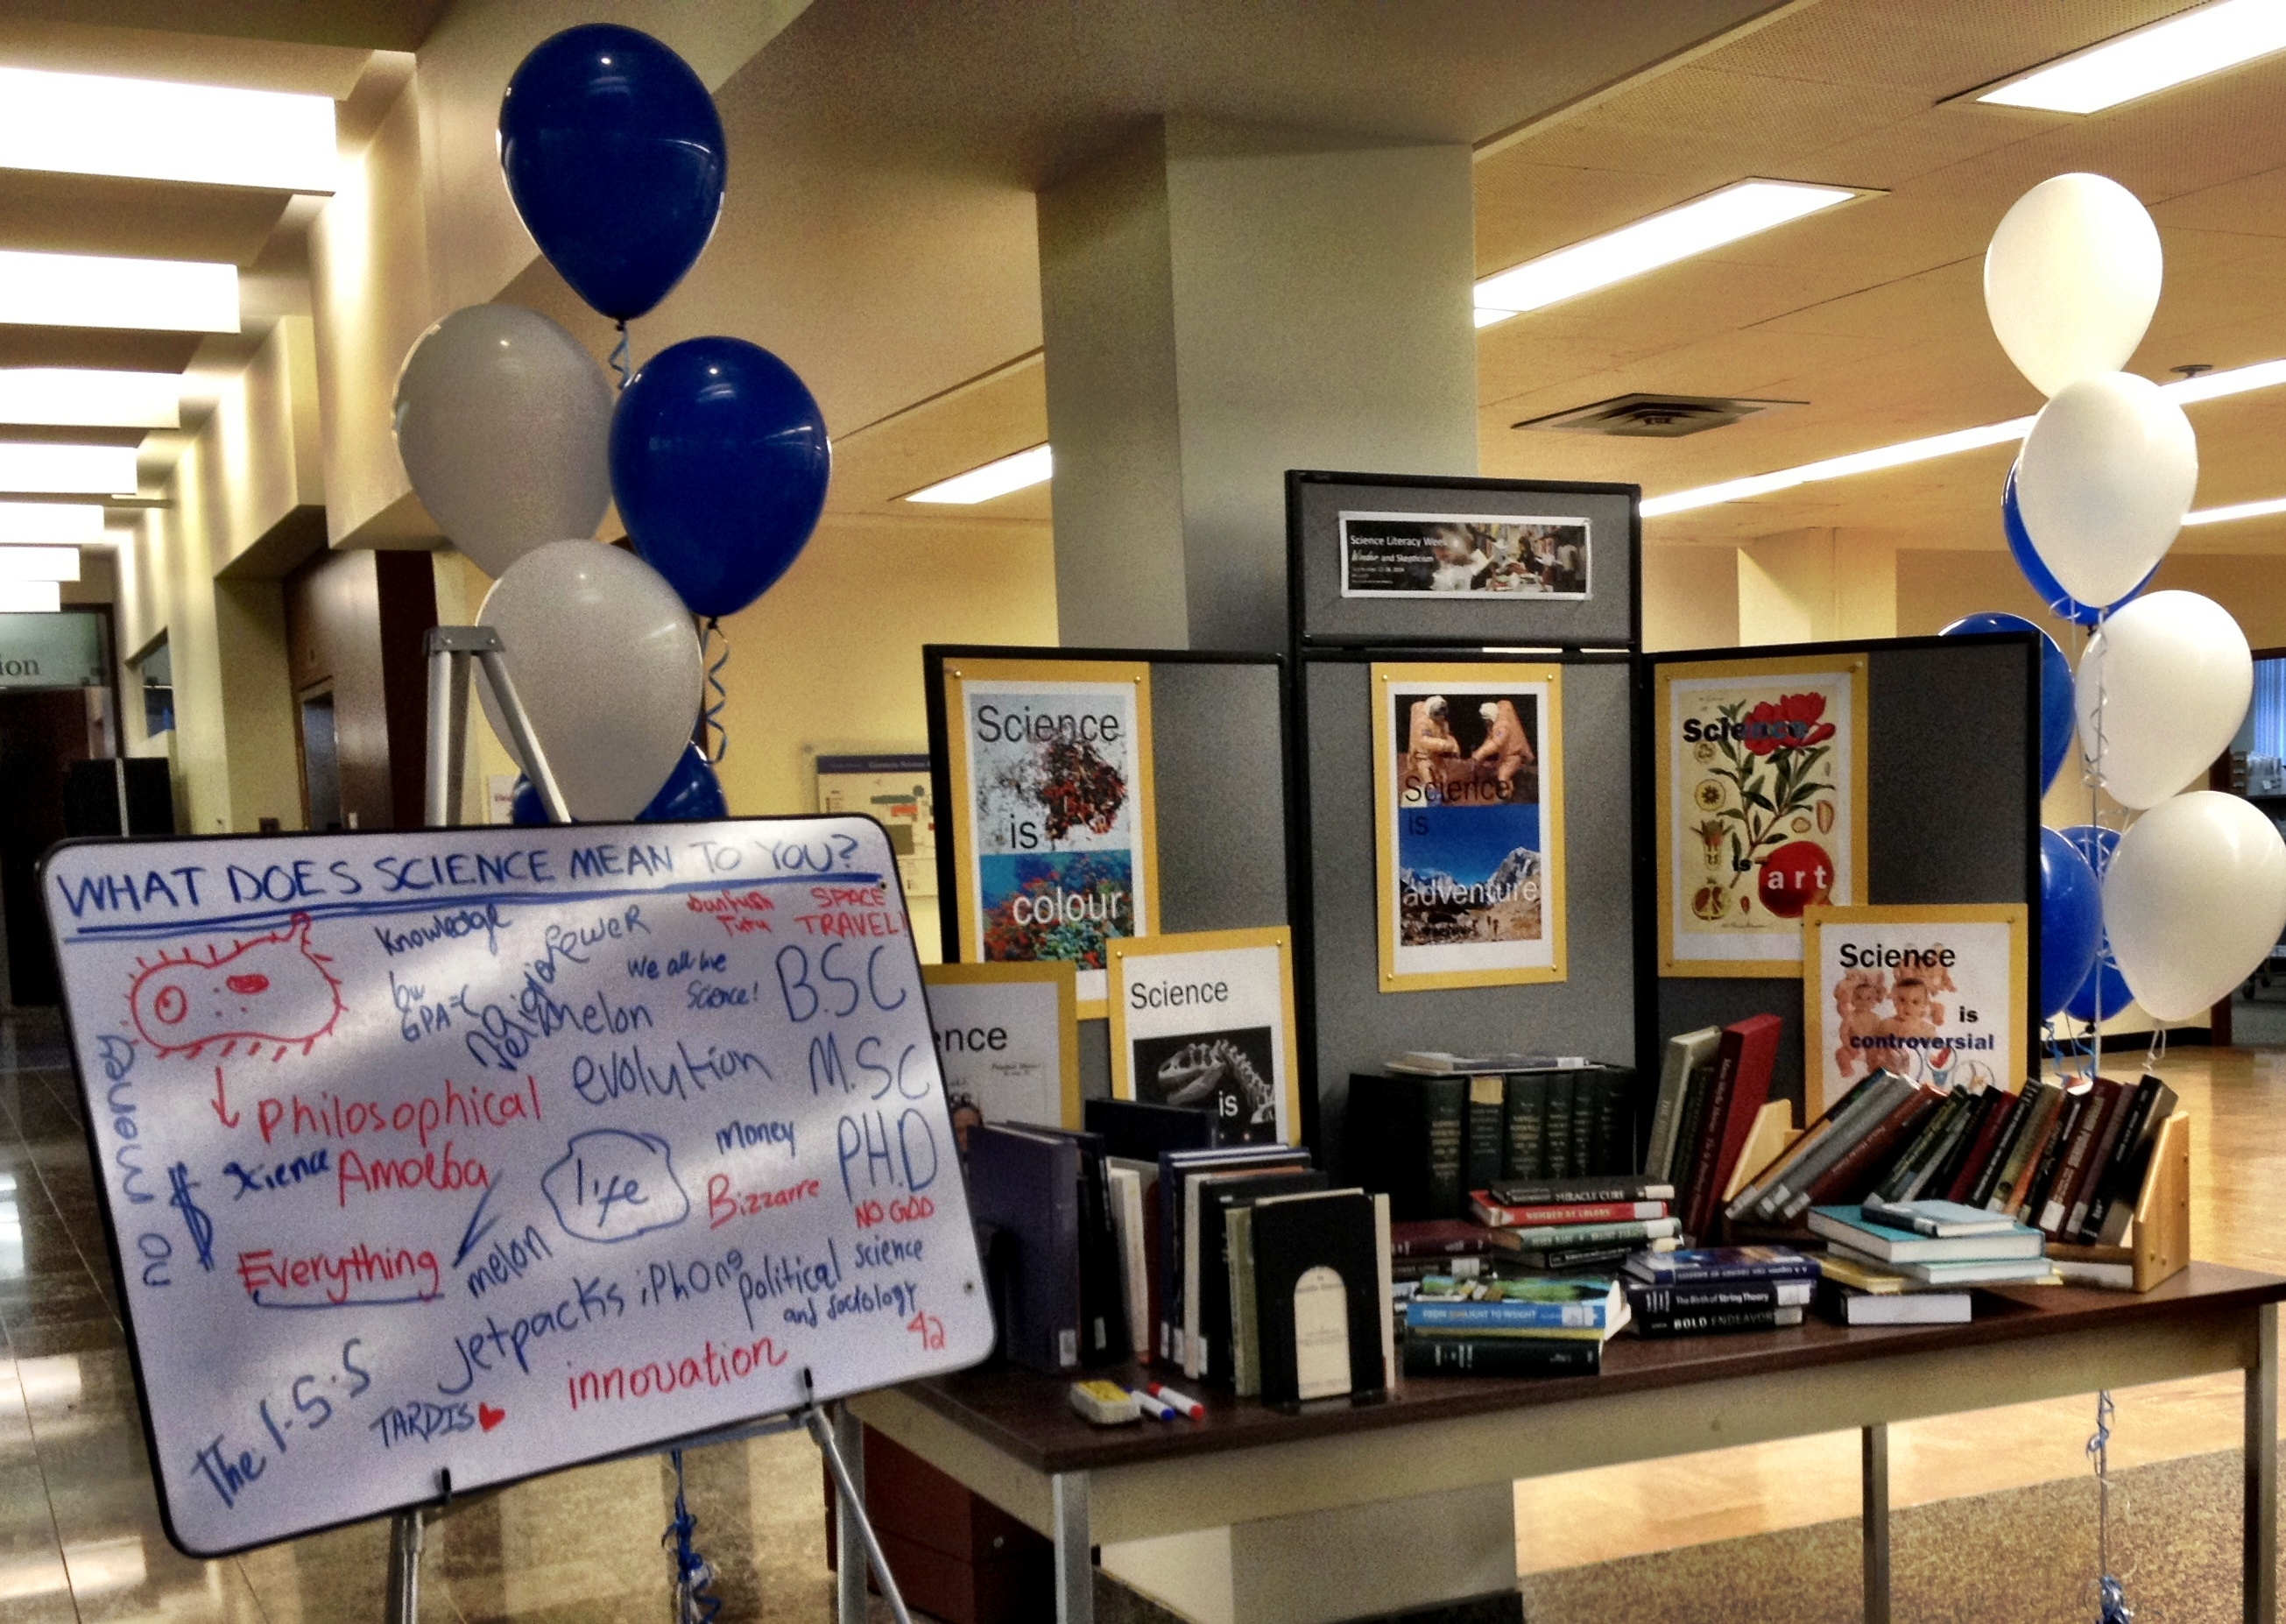 "Science books piled decoratively in front of science display board on a display table. Balloons surround the board and table. To the left, a white board states, ""What does science mean to you?"" Responses are written and drawn on the board, below the question."